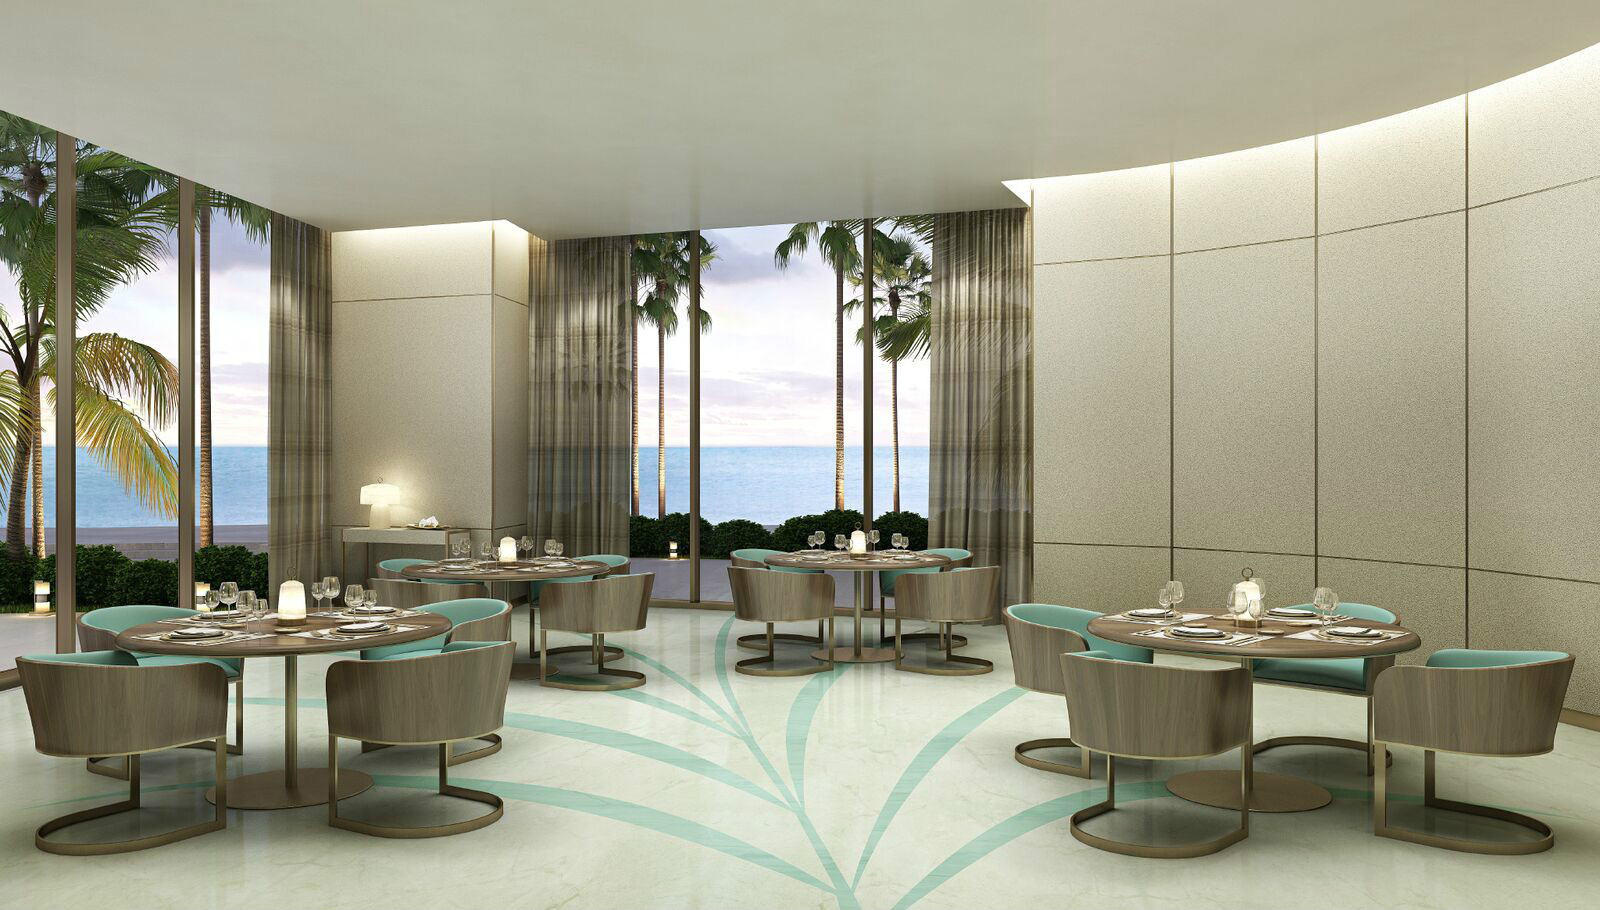 ... Residences by Armani/Casa's penthouse buyer with an exclusive  opportunity to define their custom interiors firsthand with the Armani/Casa  design team ...